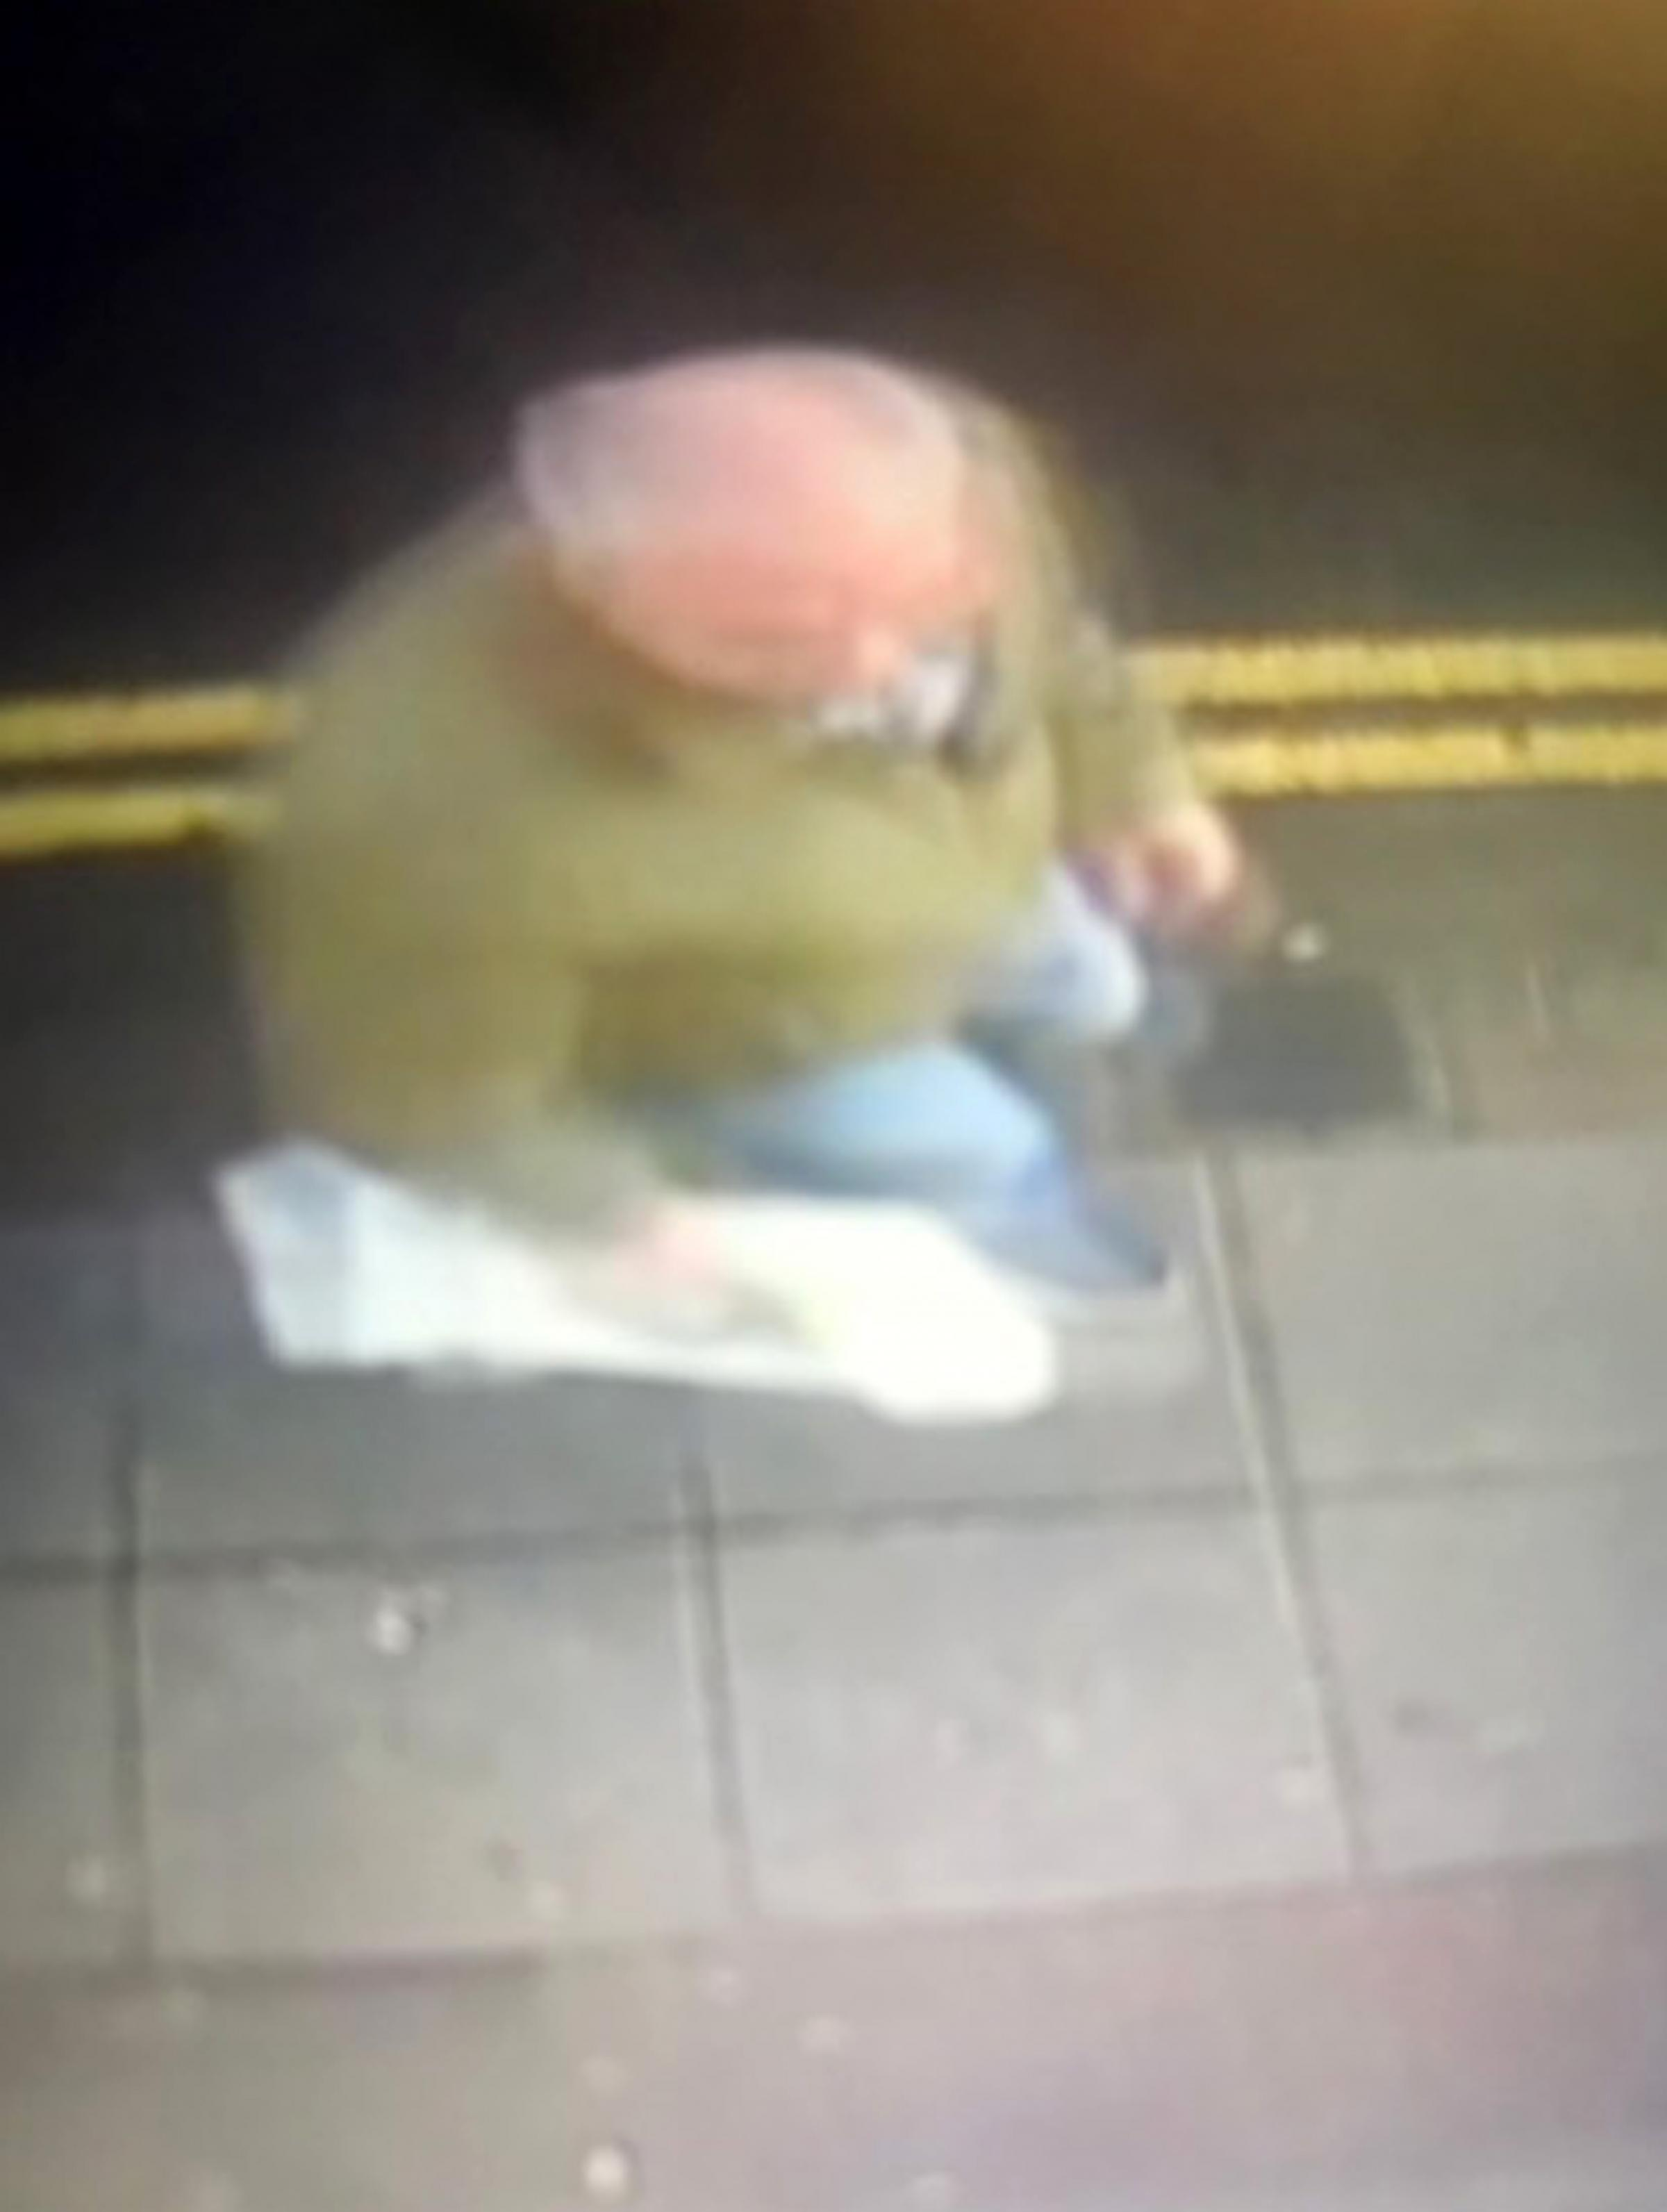 MAN WANTED: Police would like to question this man in connection with a theft in Hetton-le-Hole